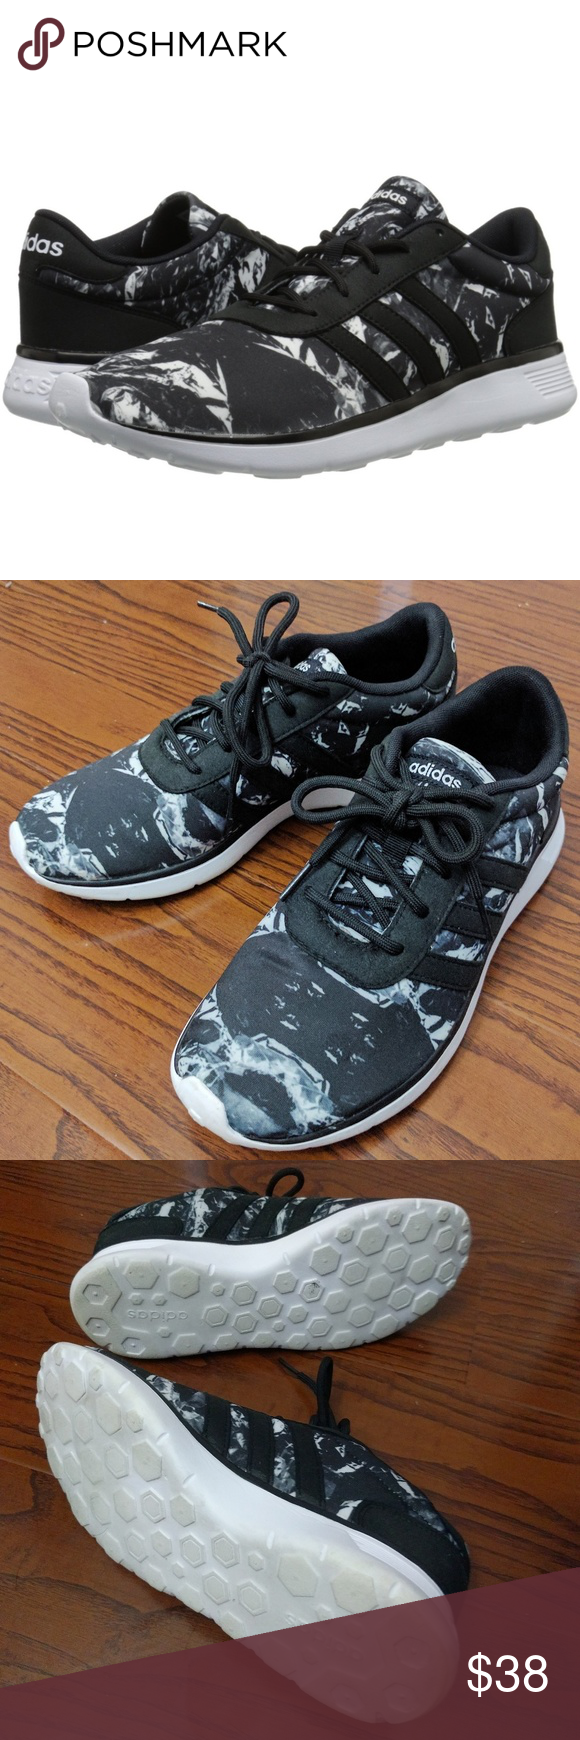 ✨LIKE NEW✨ Authentic Adidas NEO Sneakers Gently worn Adidas lite racer sneakers with black & white printed design. Very lightweight shoes with removable cushioned insole. Great for casual athletic wear and work outs.   The pictures show that the soles and insoles are lightly worn. Other than that there are no other imperfections on the shoes.   No trades. Adidas Shoes